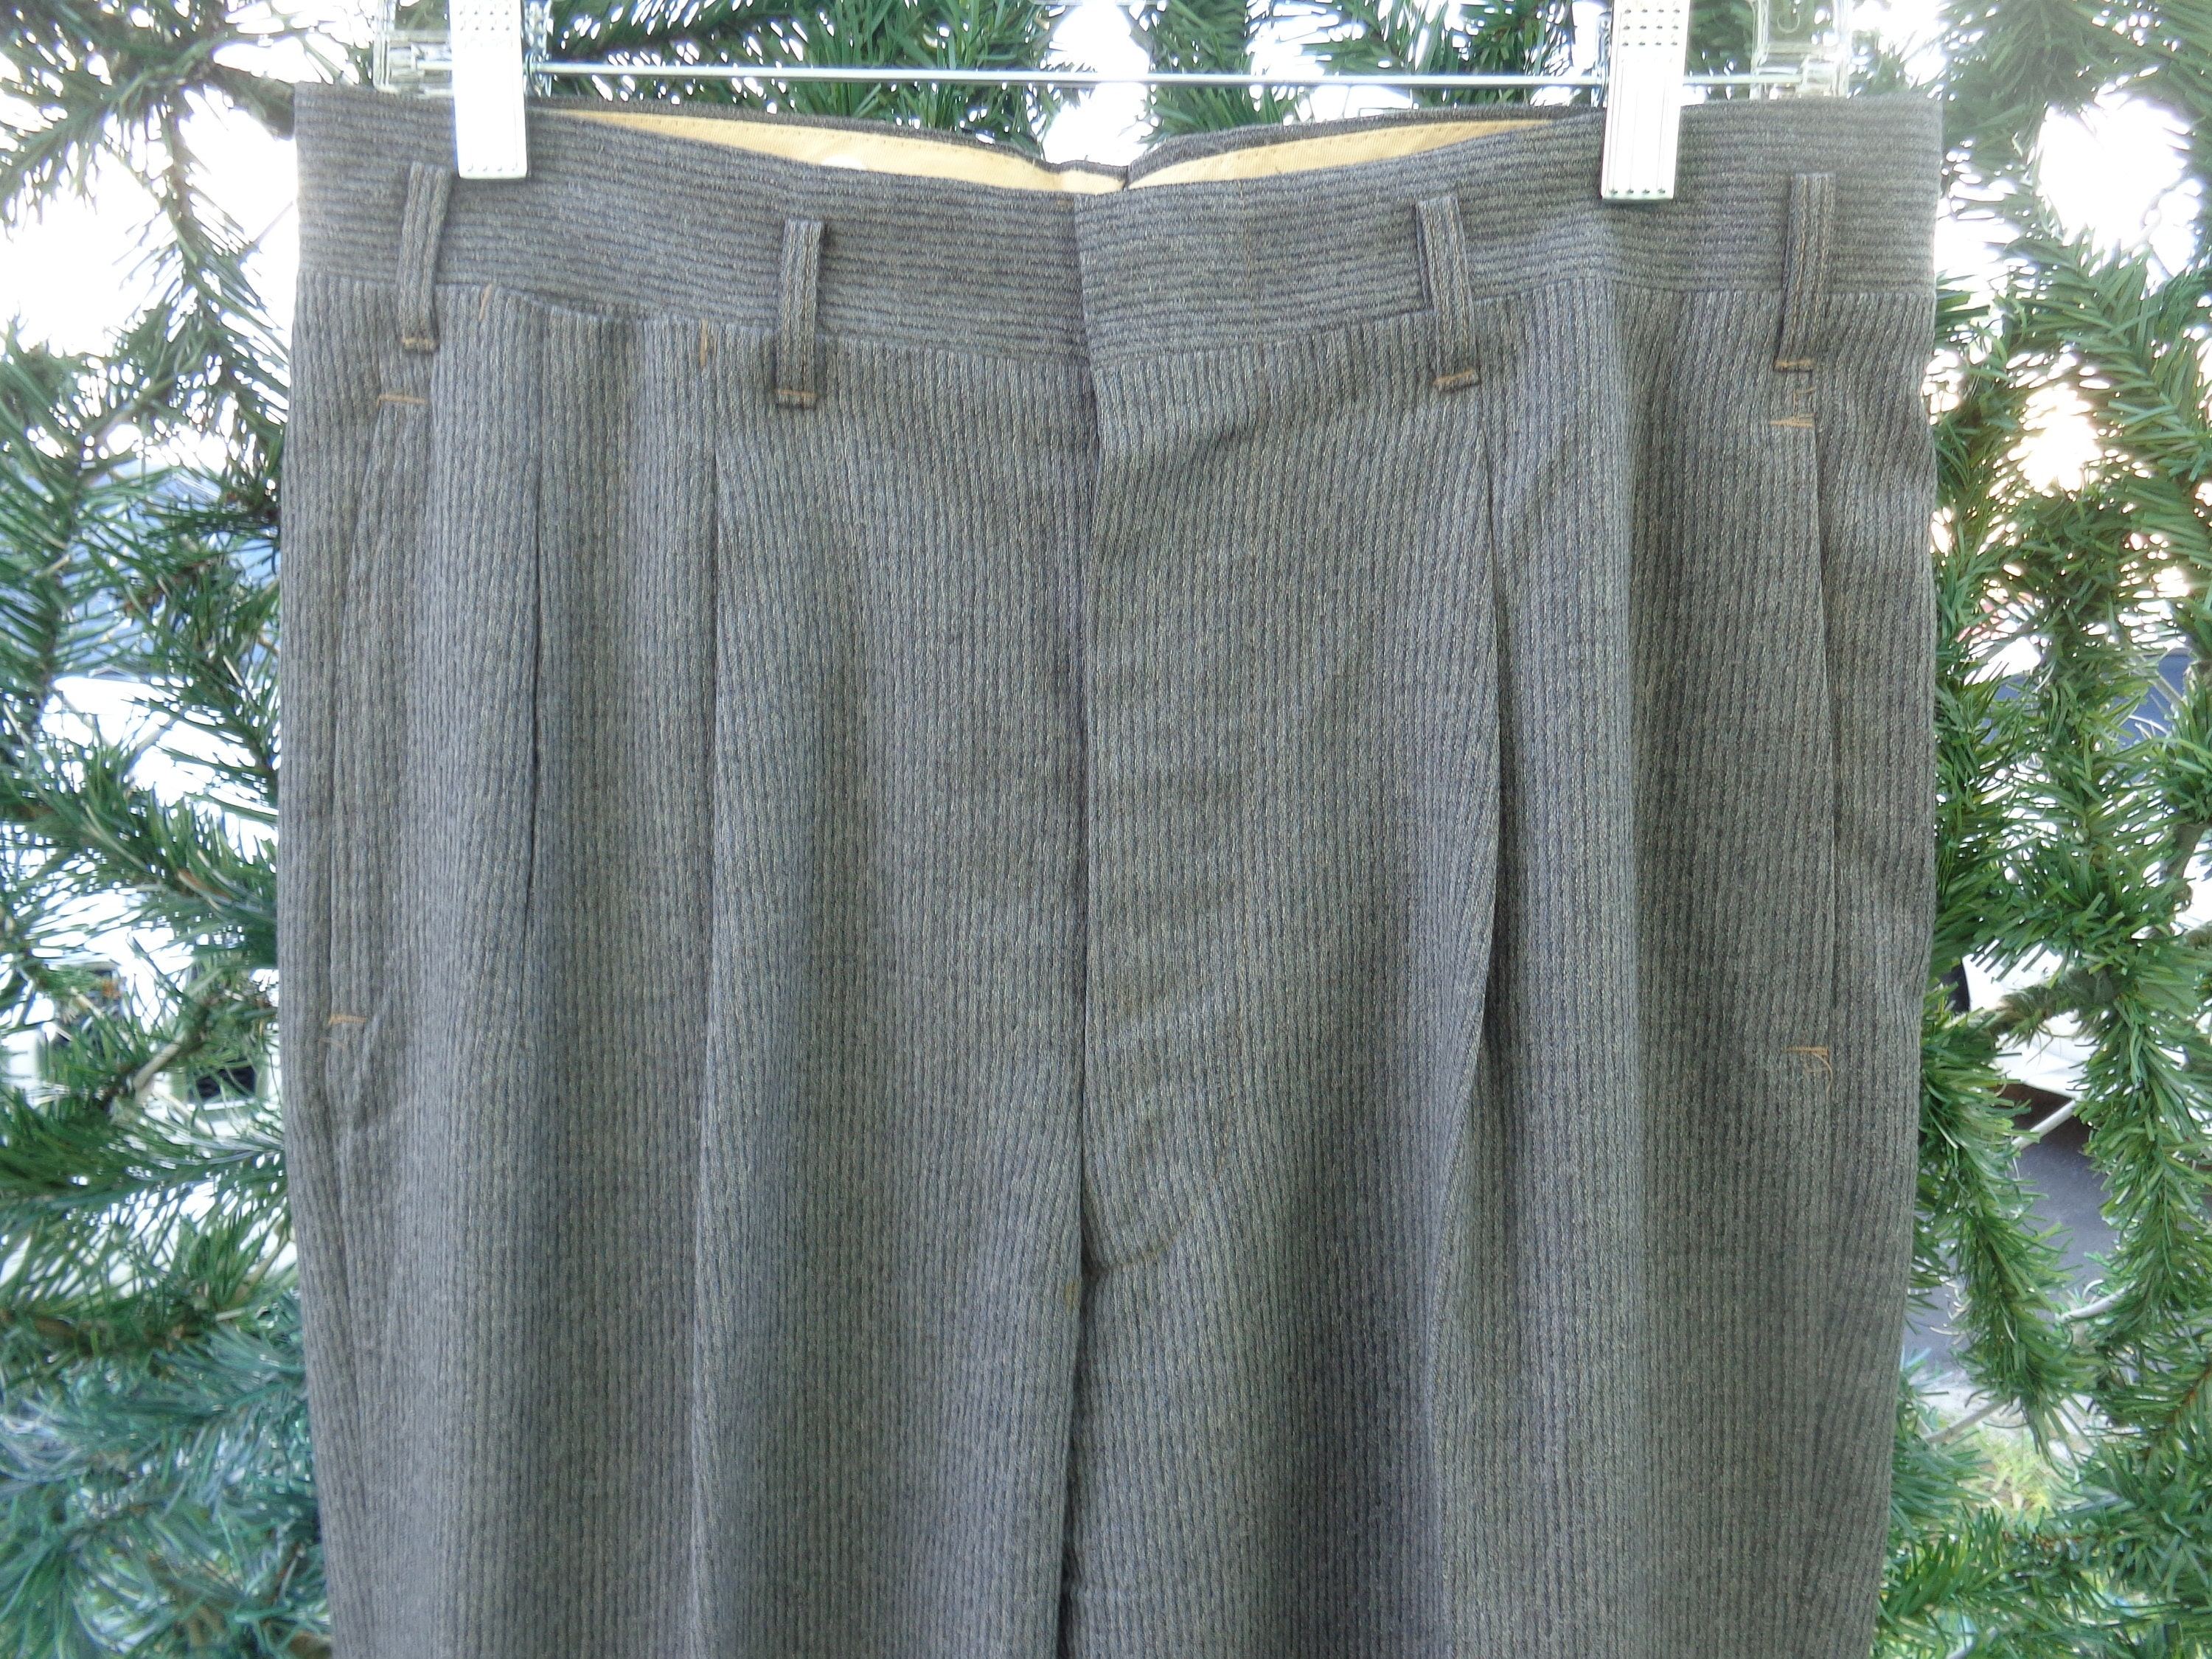 1950s Men's Ties, Bow Ties – Vintage, Skinny, Knit Mens 1950s Classic Gray Pinstripe Trousers $79.00 AT vintagedancer.com